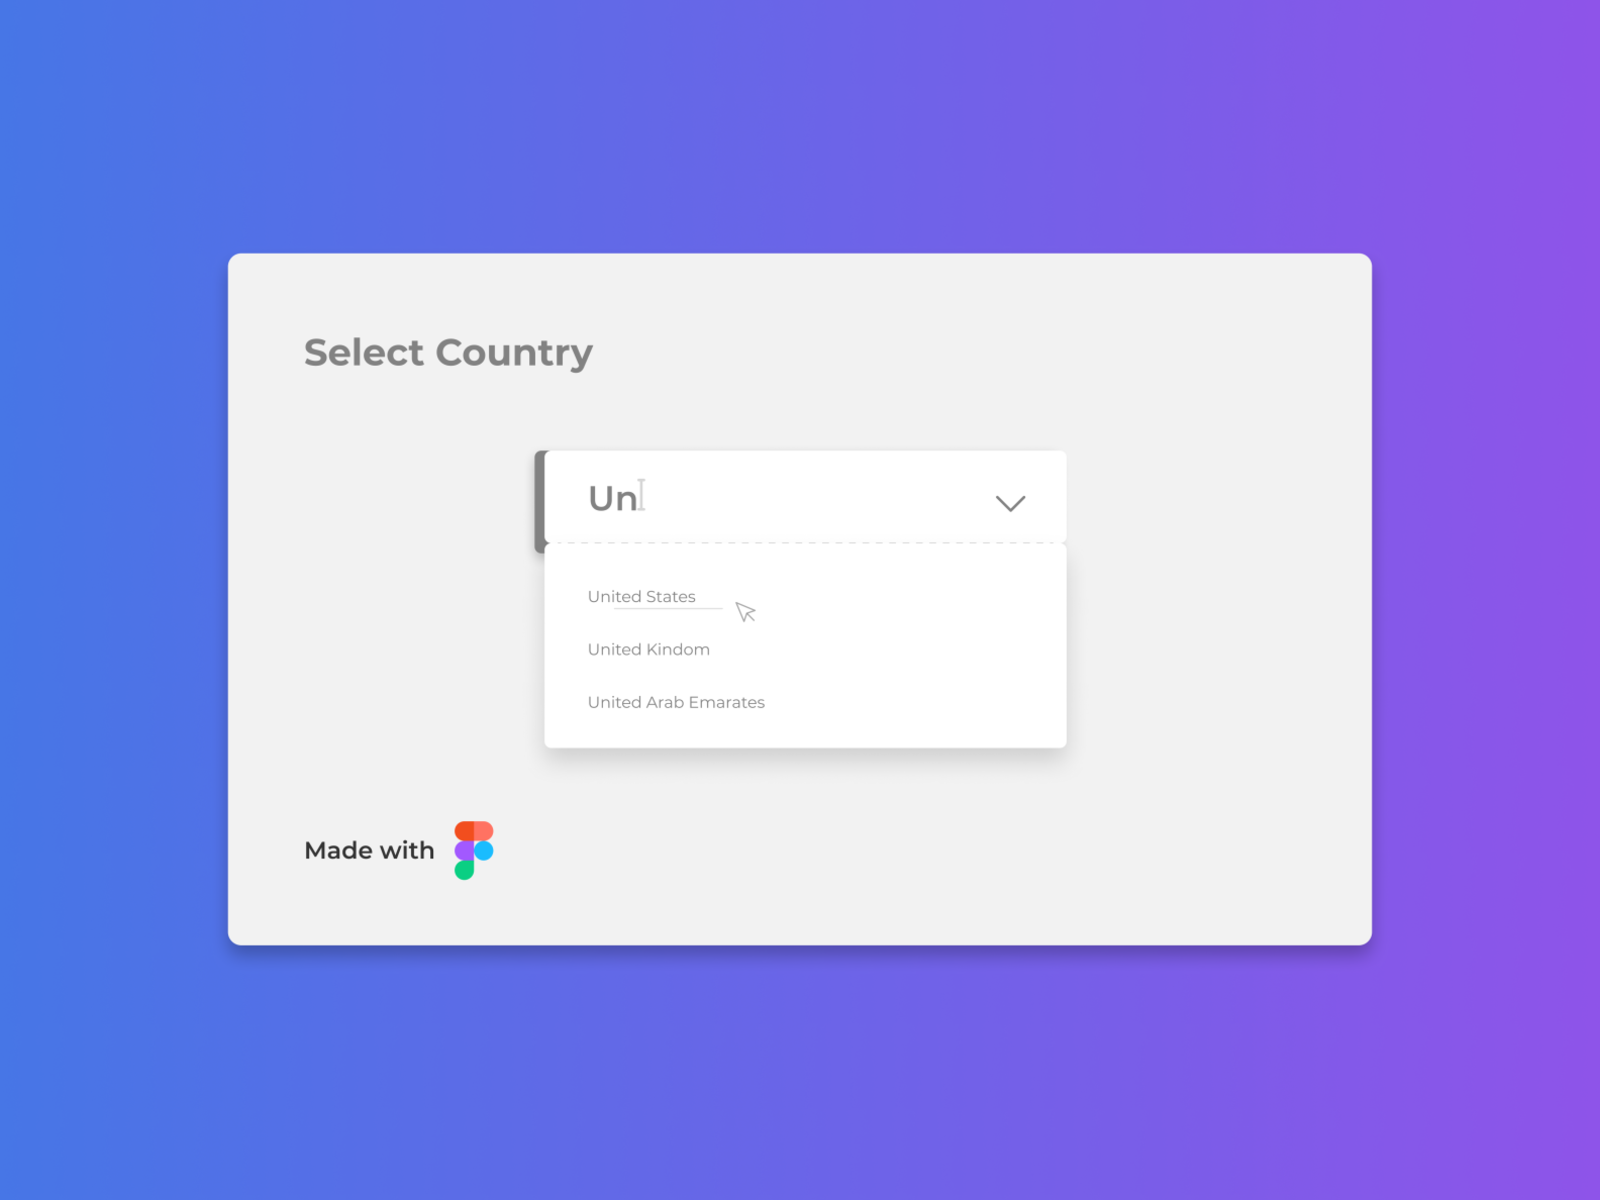 Static mockup of a custom select input to select countries